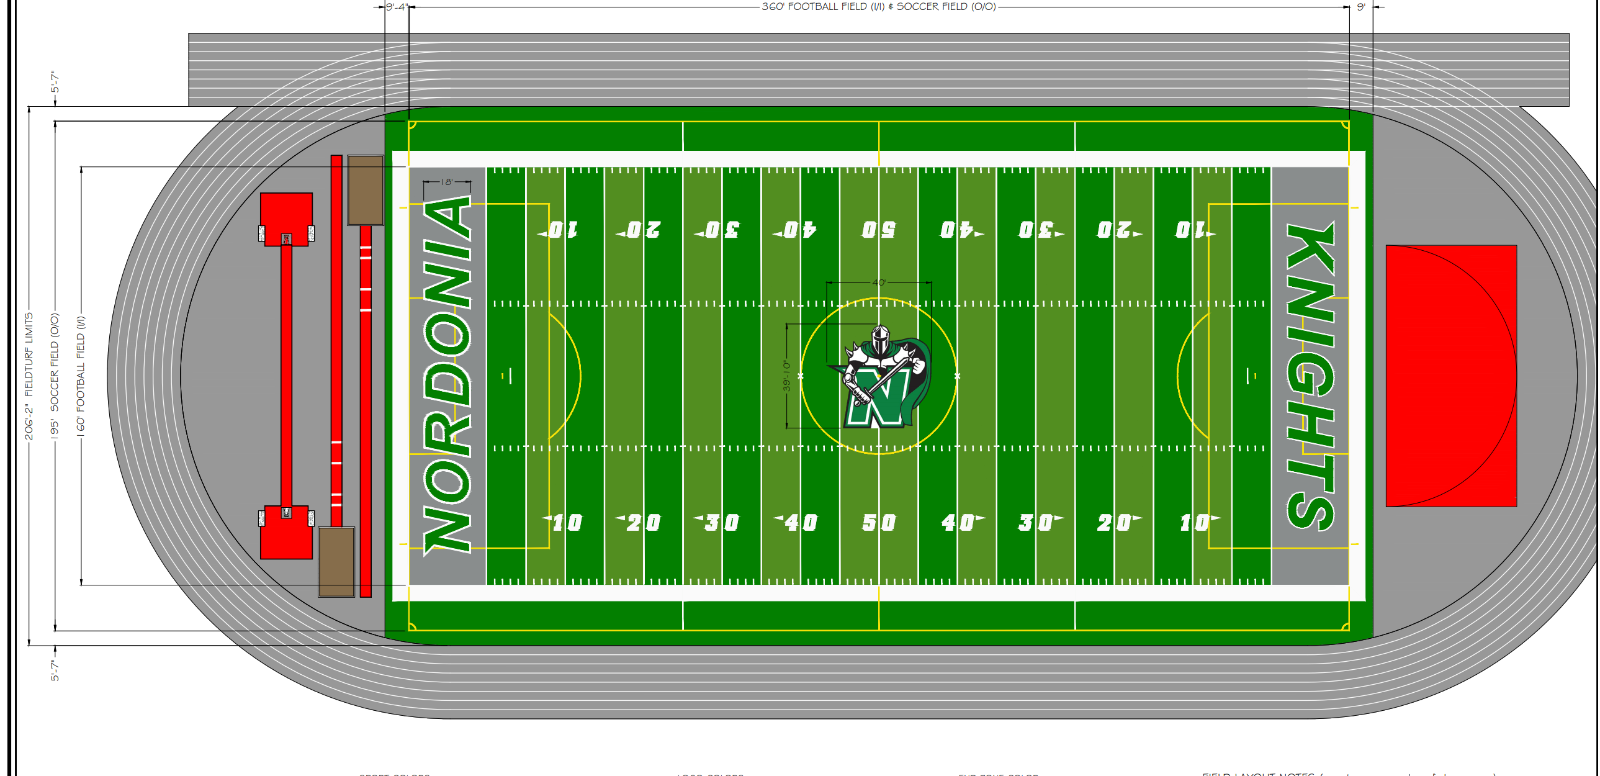 It's Turf Time!